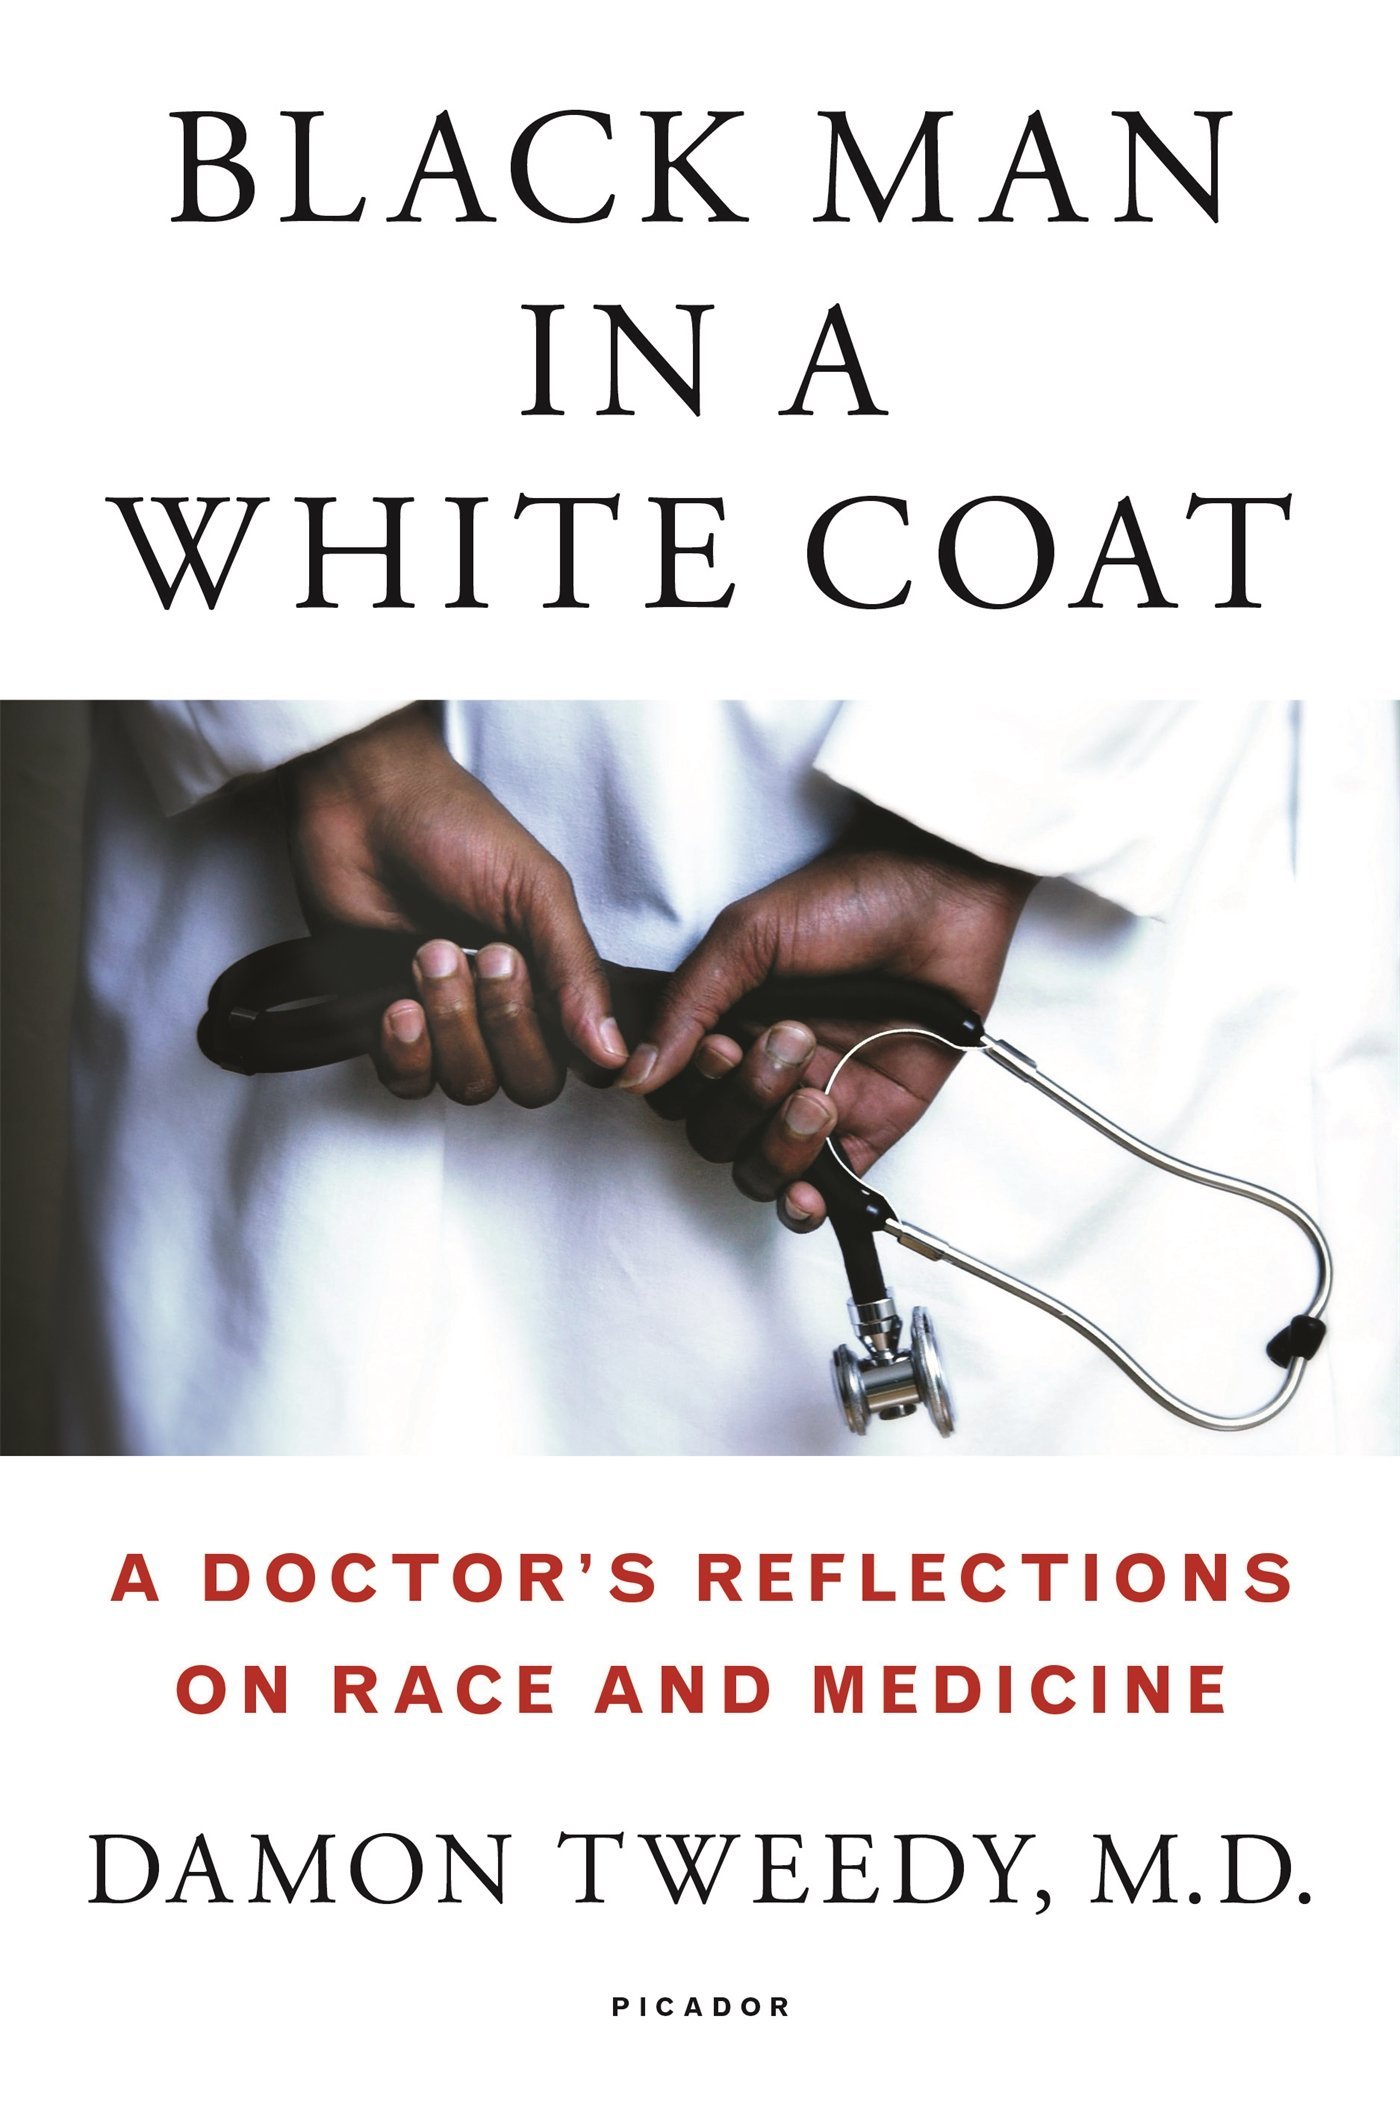 Top 10 Non Fiction Black Man in a White Coat by Damon Tweedy